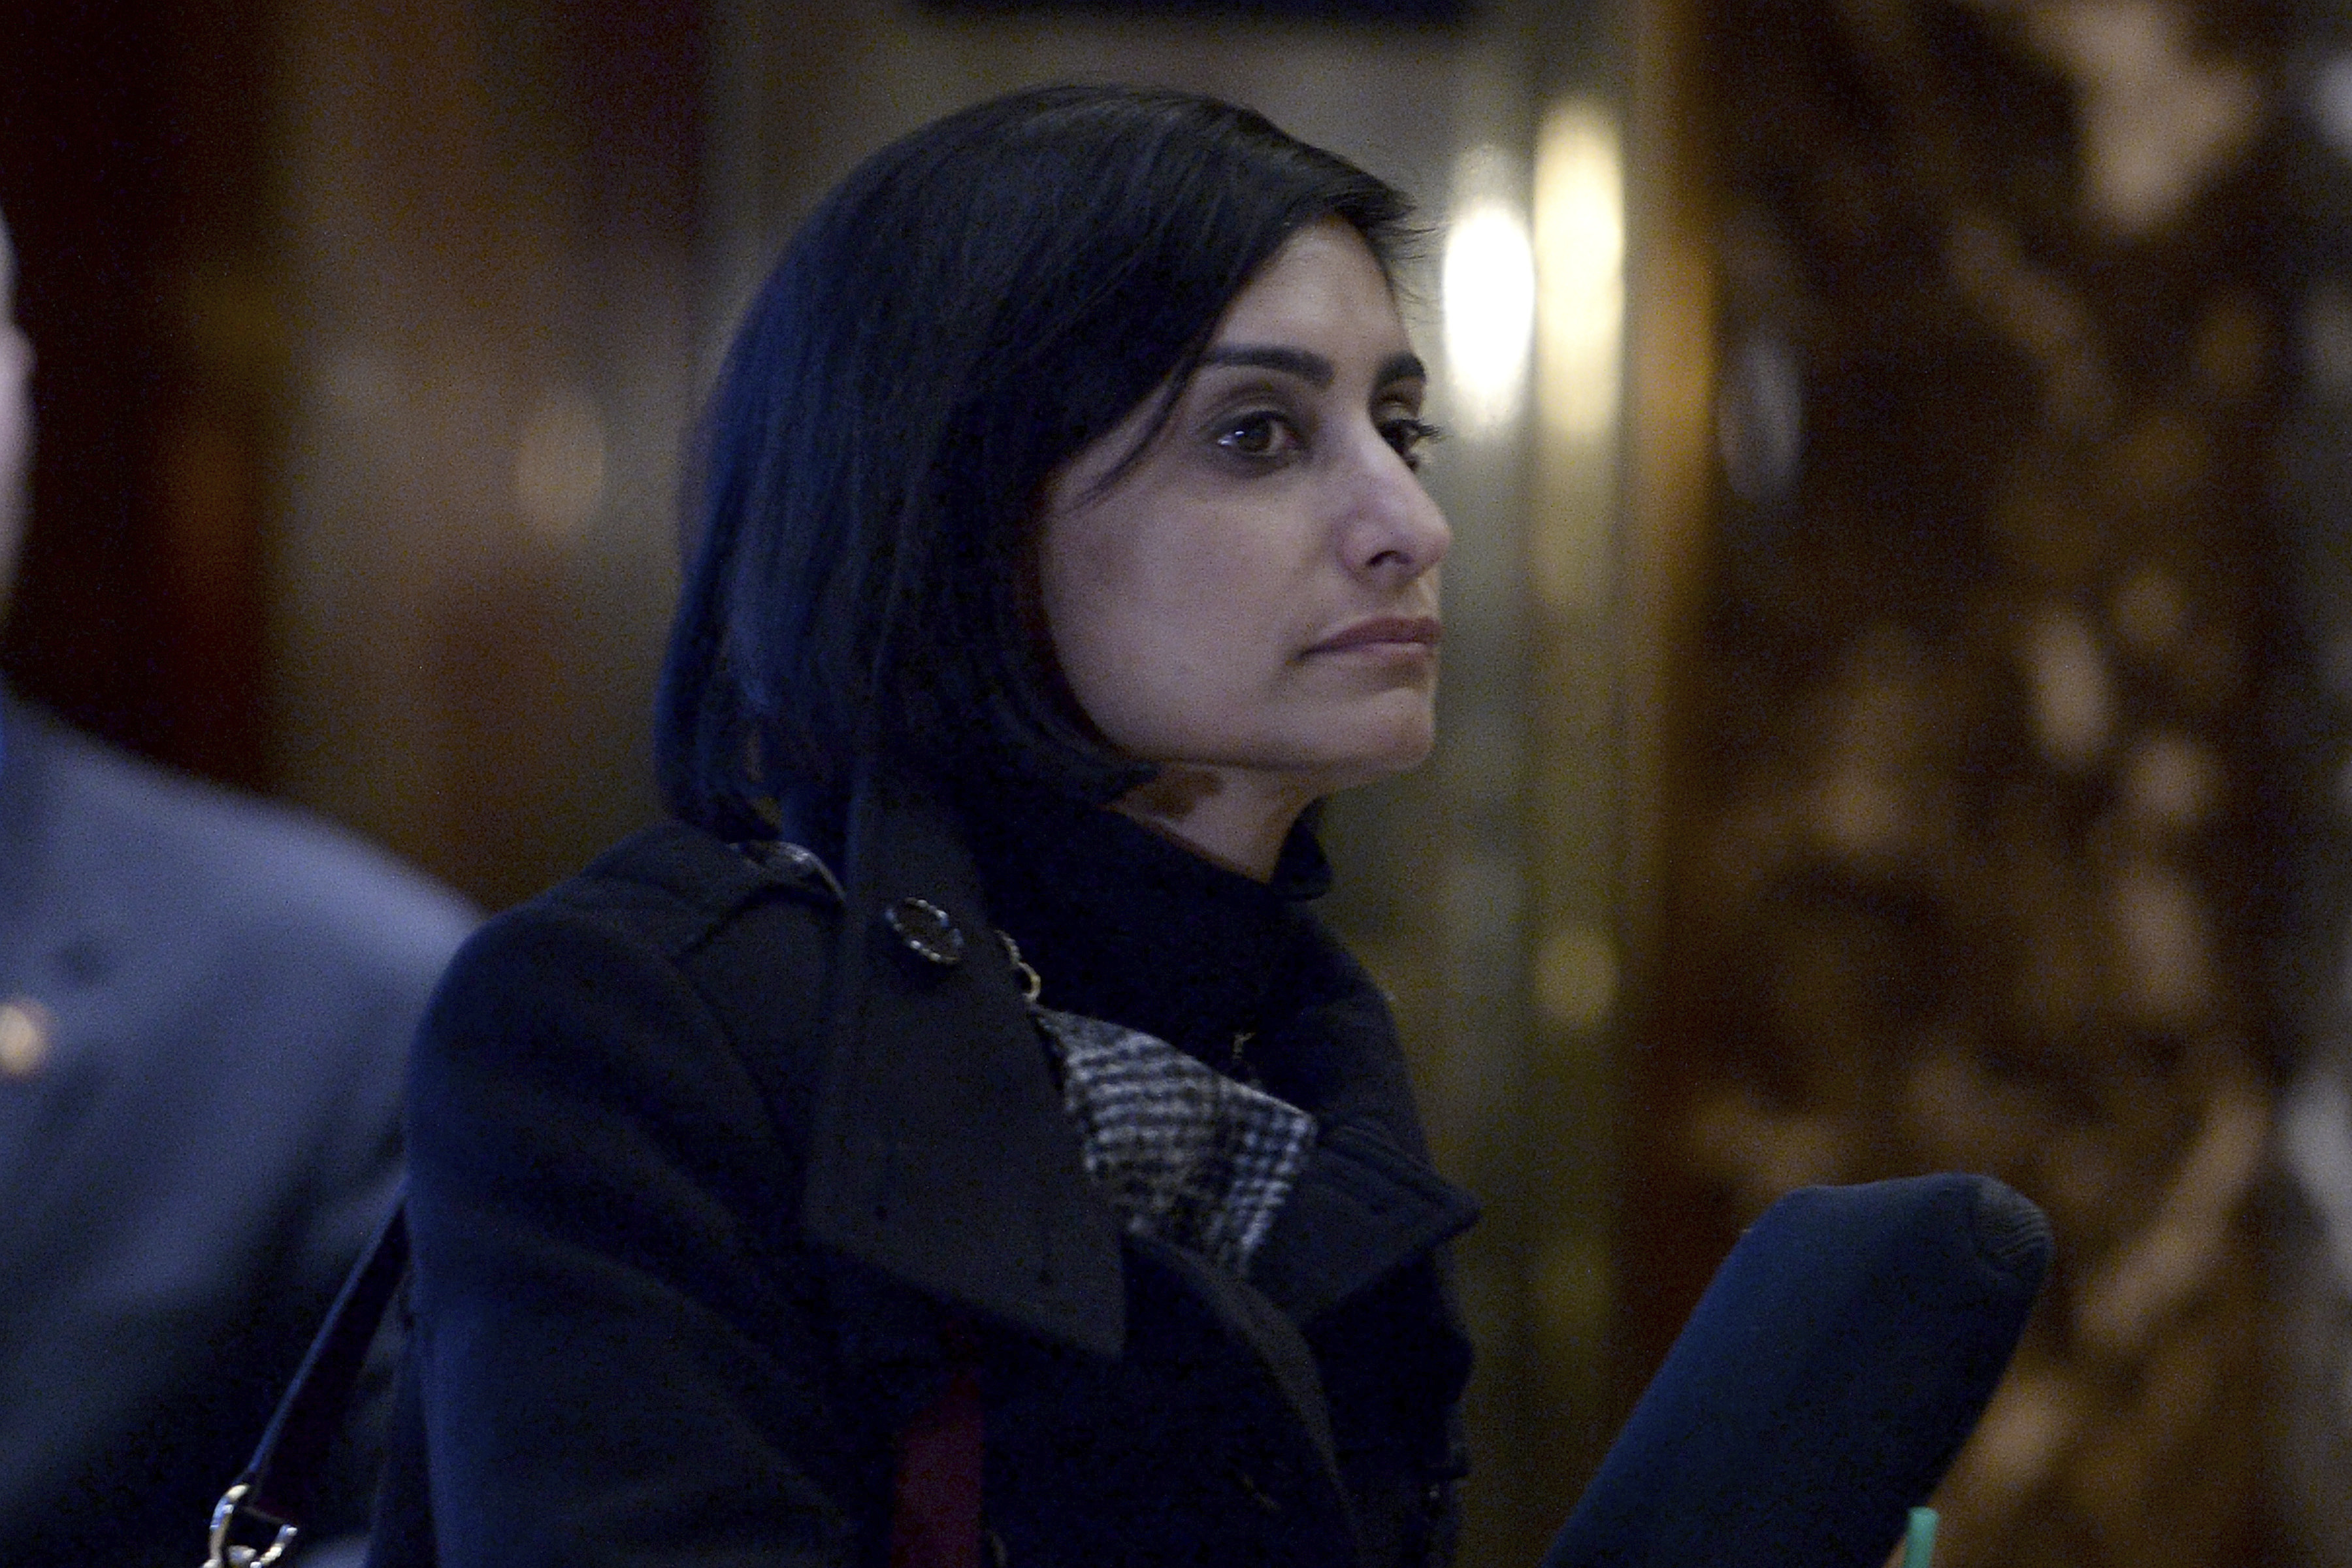 Seems Verma, president's choice for Centers for Medicare and Medicaid Services administrator, is seen waiting for the elevator in the lobby of the Trump Tower in New York on Jan. 10, 2017.